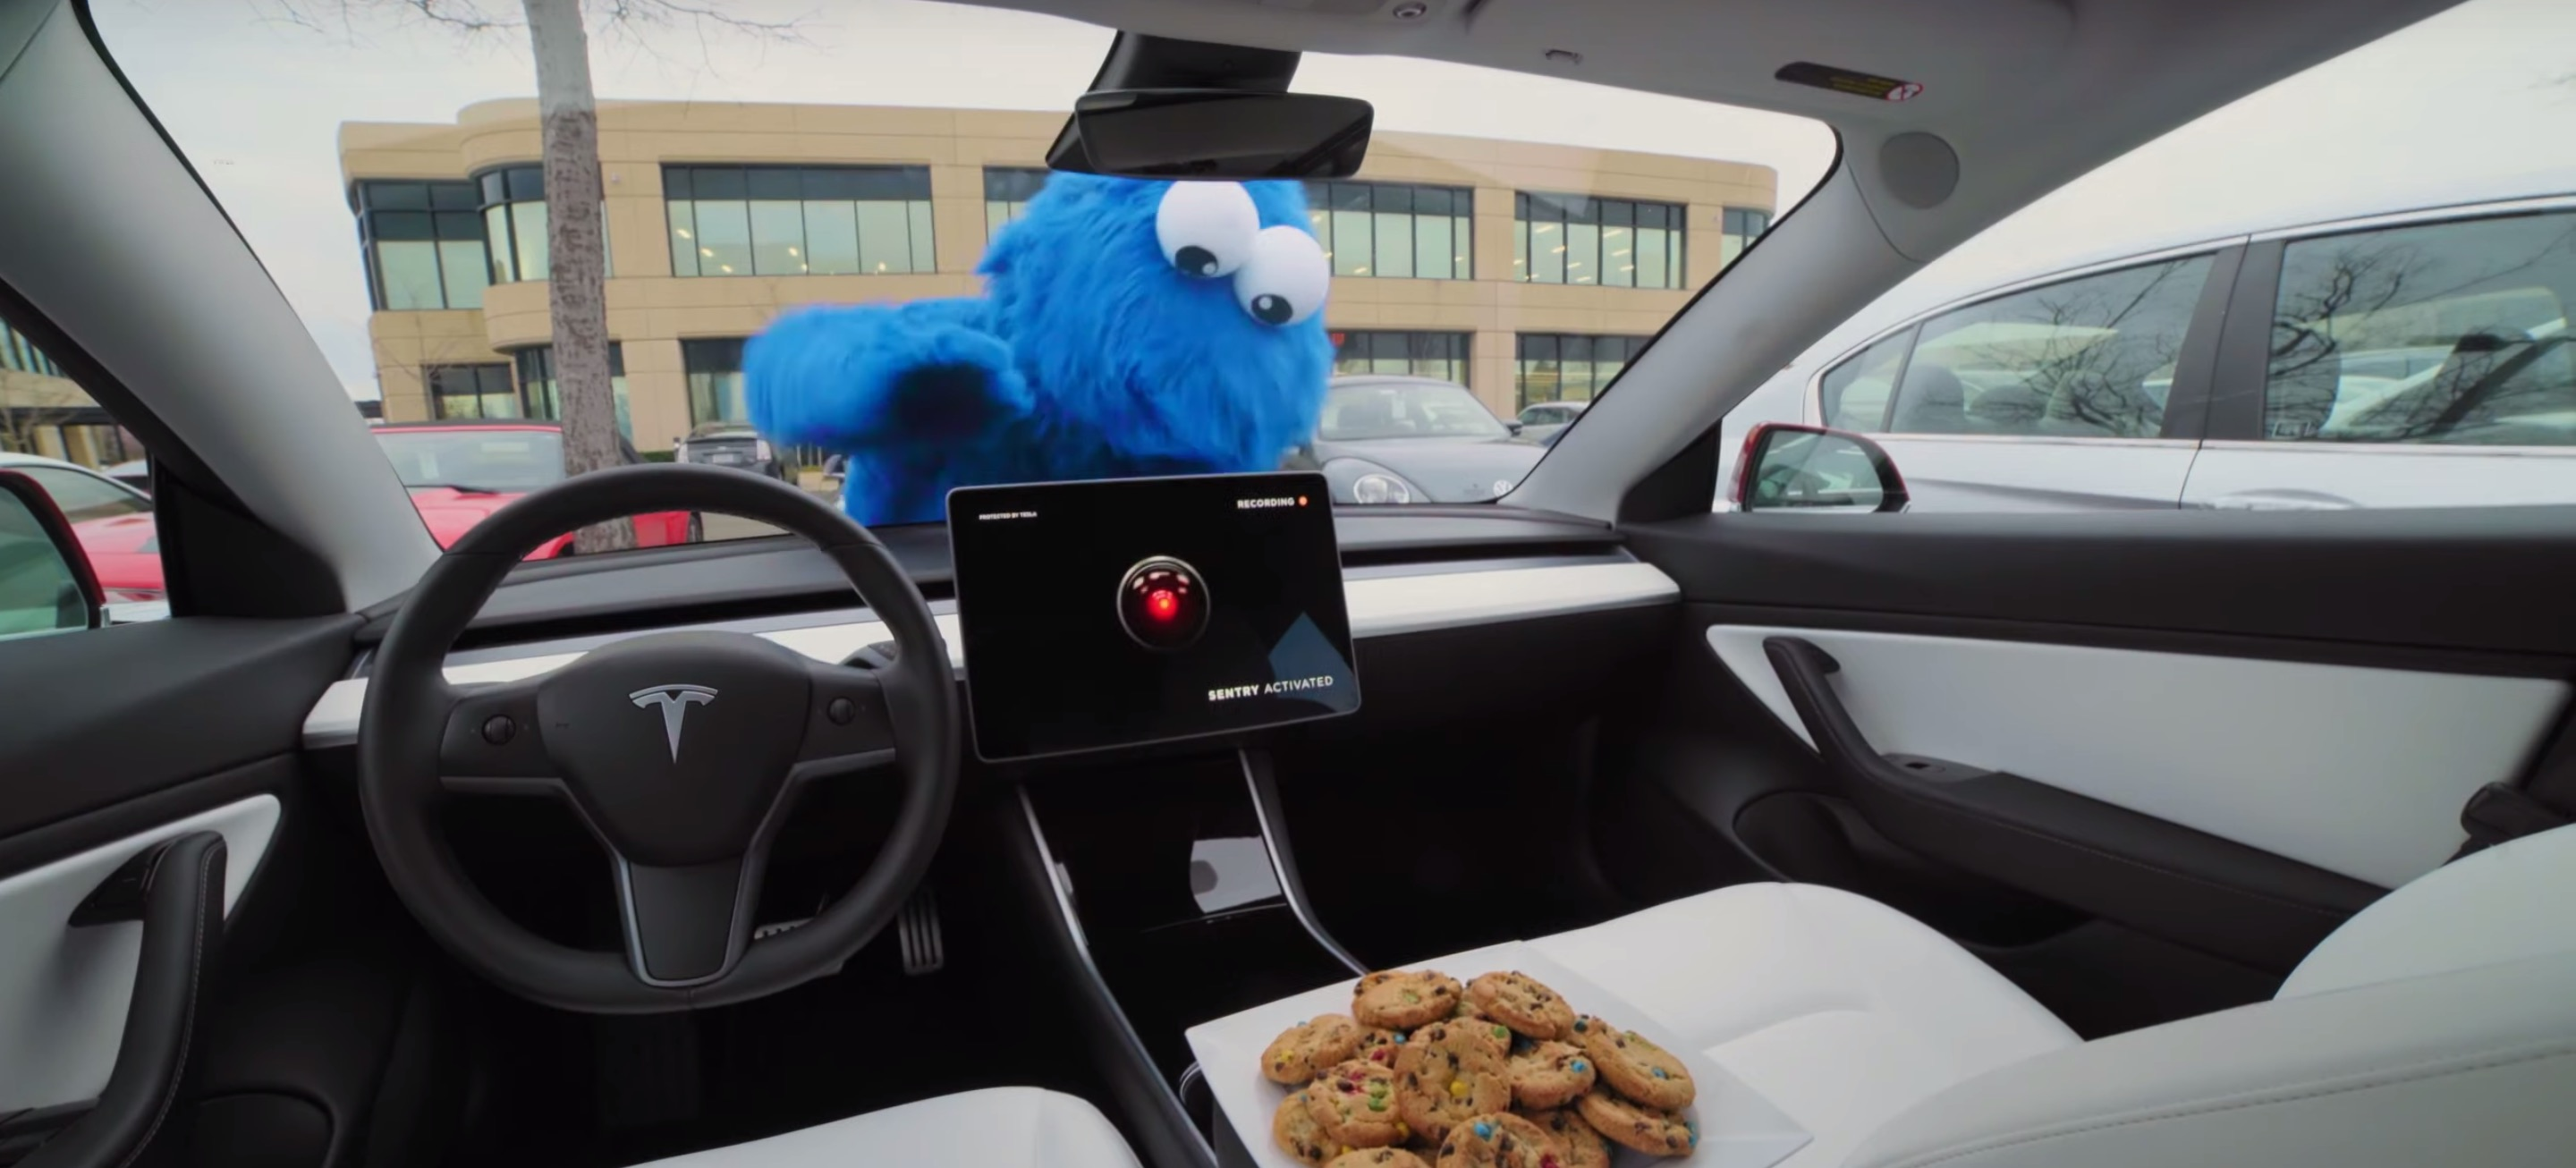 Tesla hires Cookie Monster to demonstrate new Sentry Mode